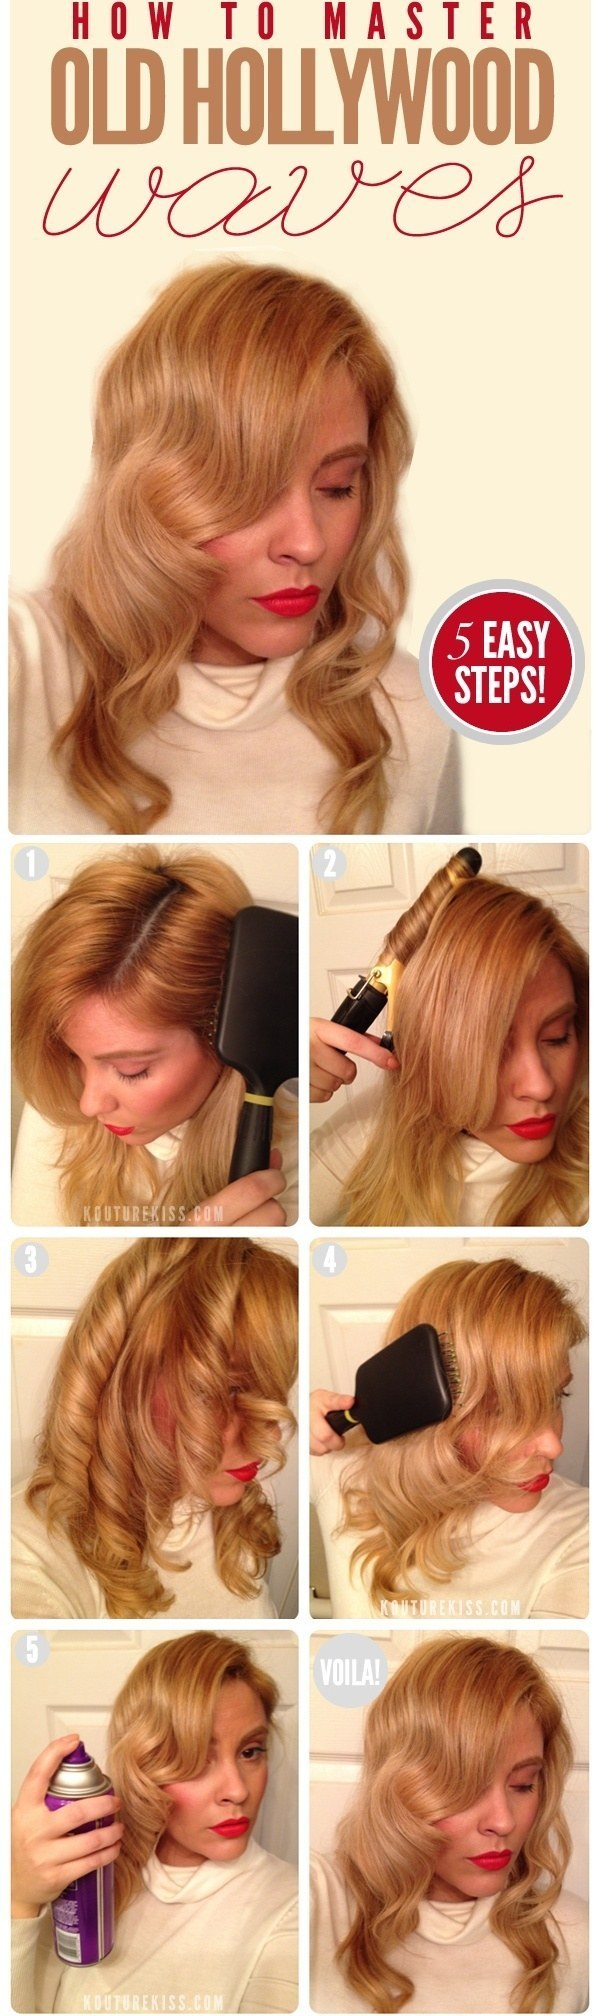 Amazing 30 Diy Vintage Hairstyle Tutorials For Short Medium Long Hair Hairstyles For Women Draintrainus